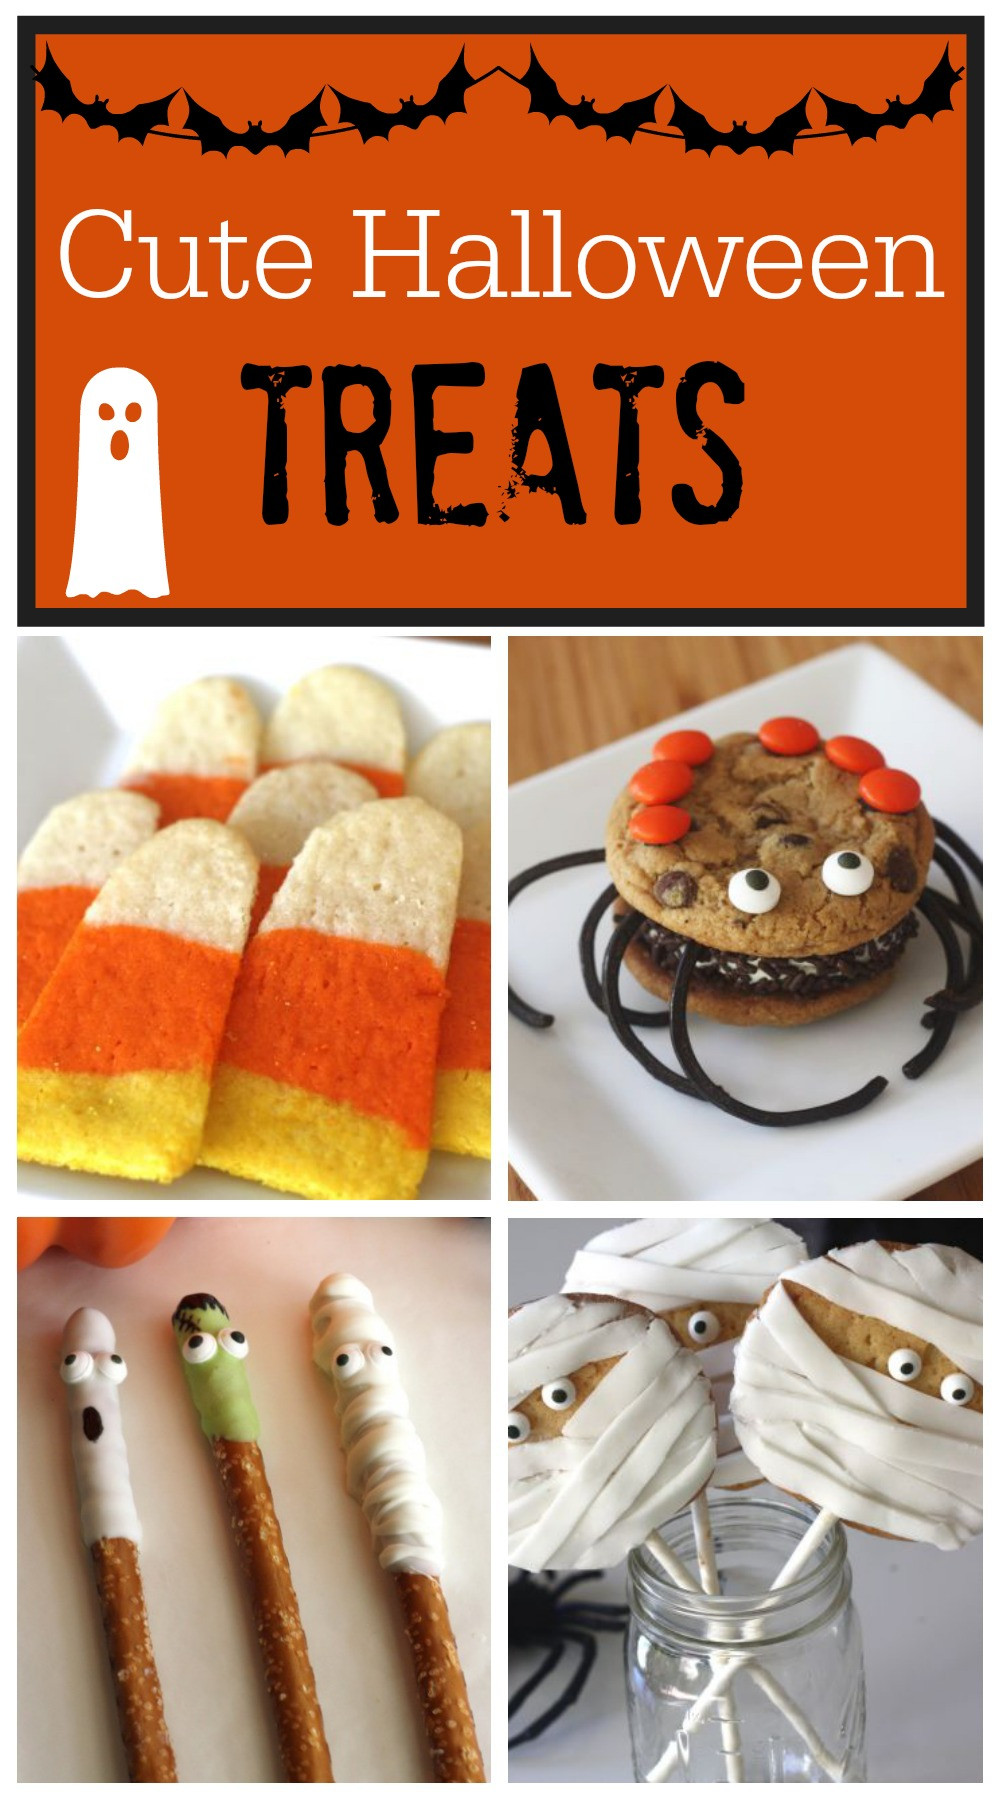 Cute Halloween Cookies  Cute Halloween Treats